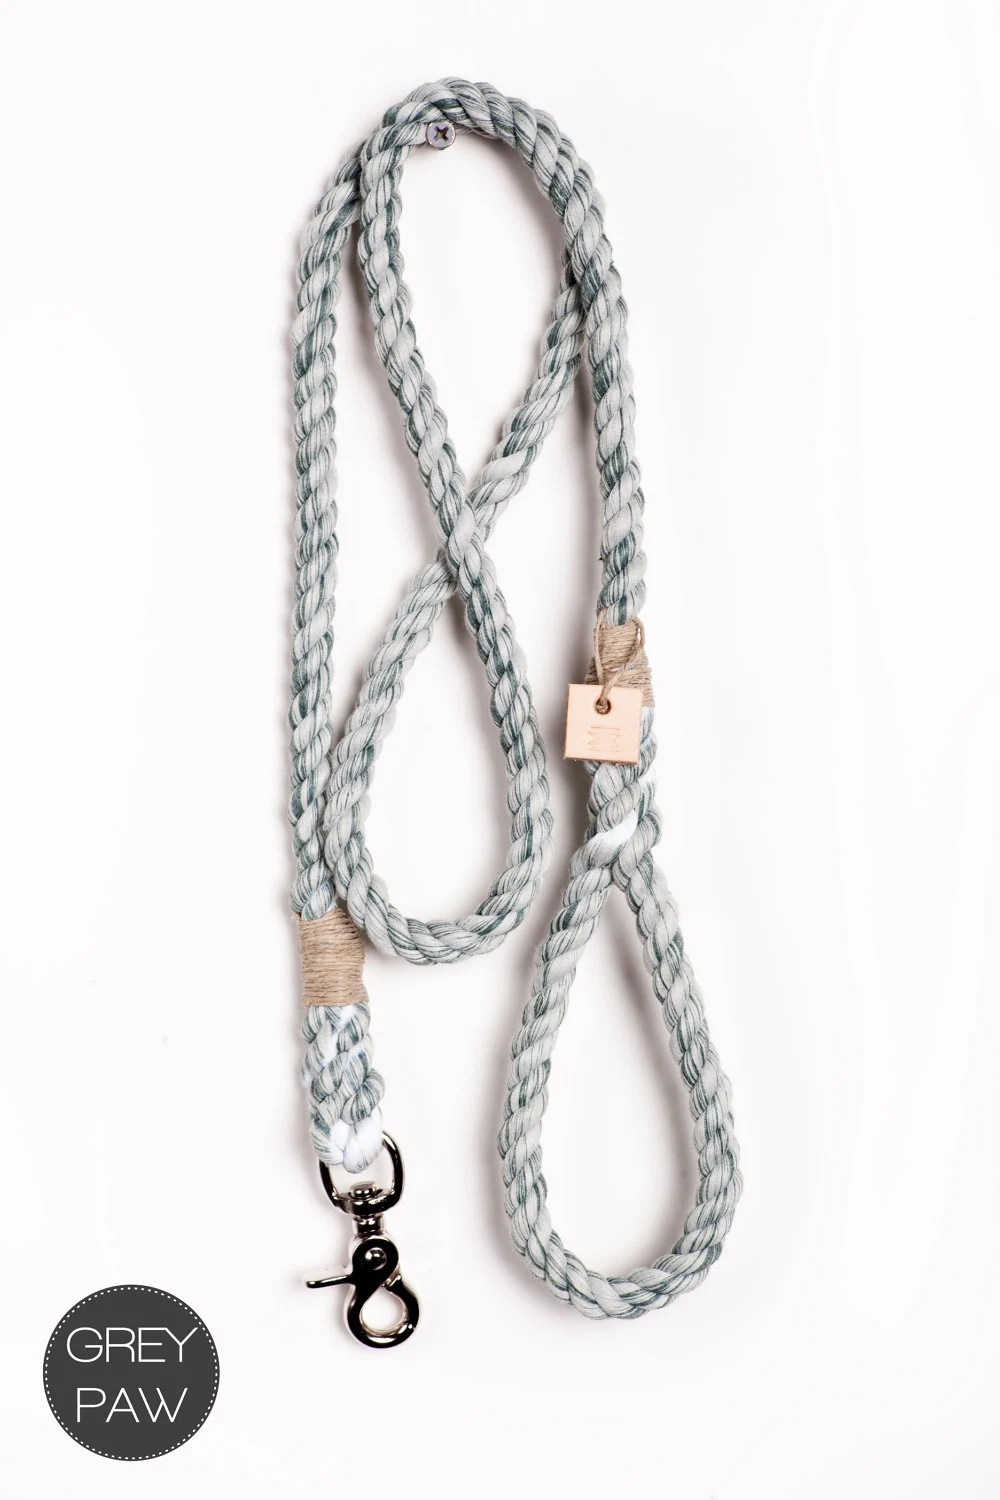 Rope dog lead pet supplies dog collar dog leash: by